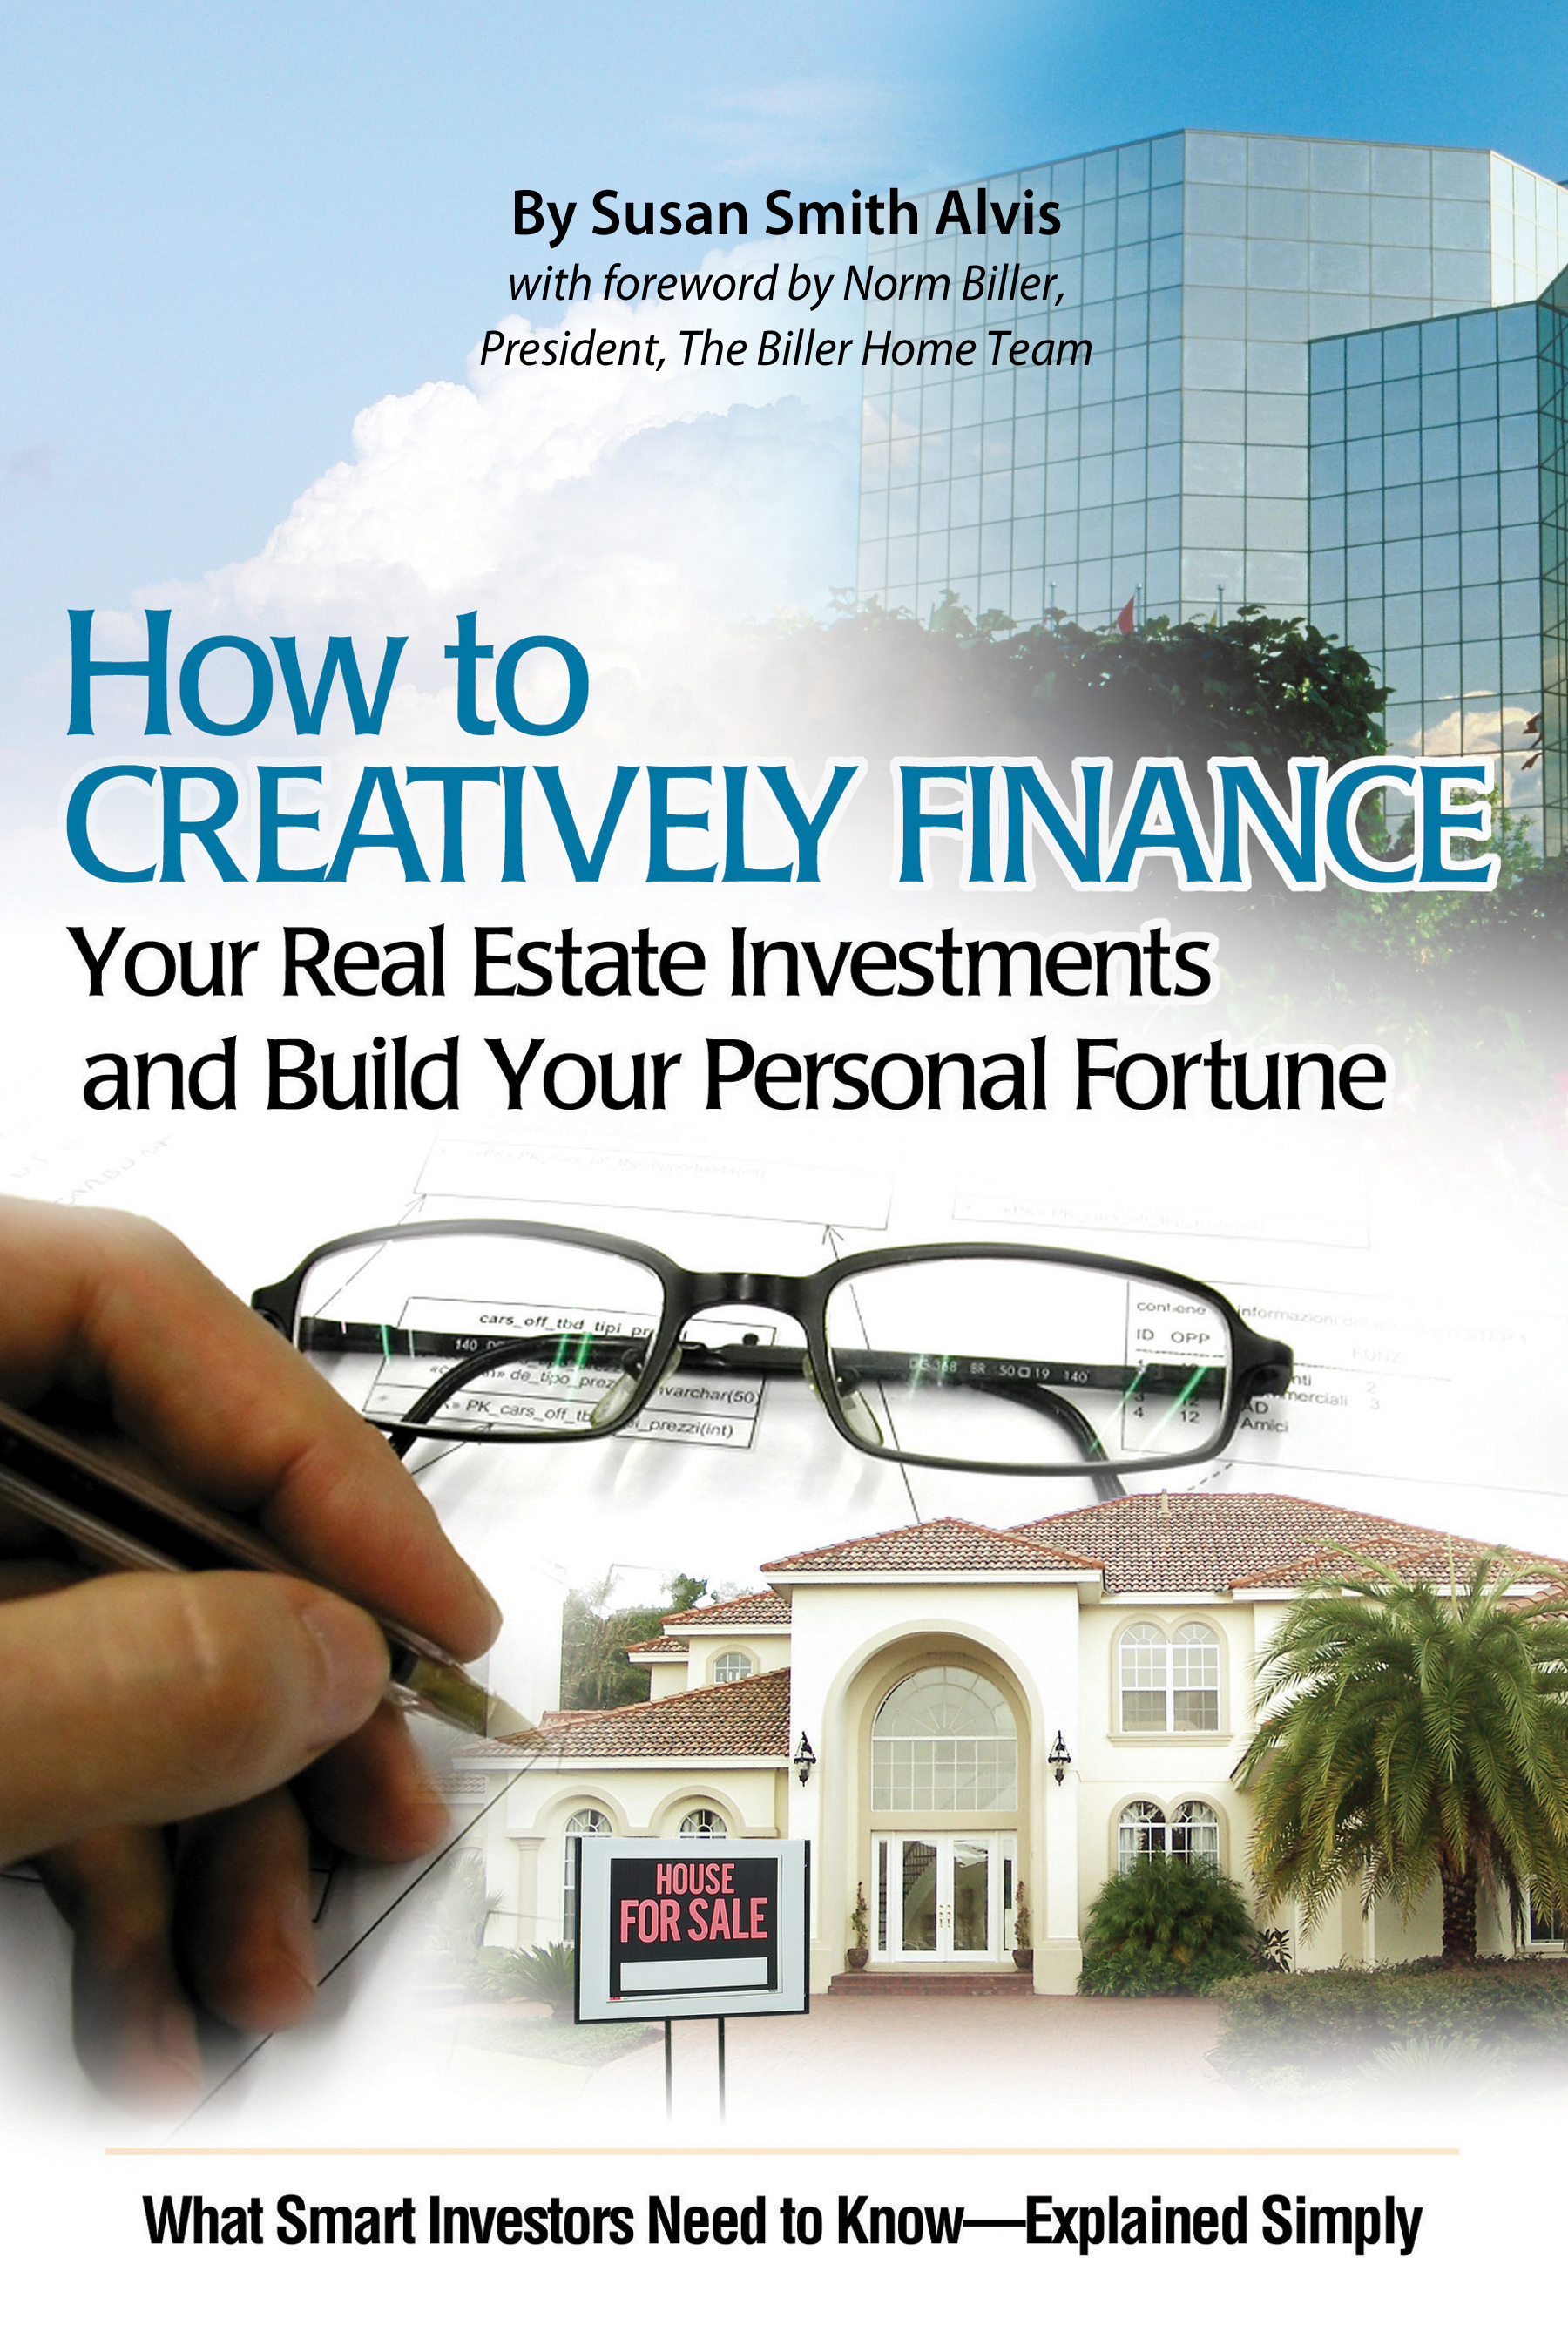 How to Creatively Finance Your Real Estate Investments and Build Your Personal Fortune: What Smart Investors Need to Know What Smart Investors Need to